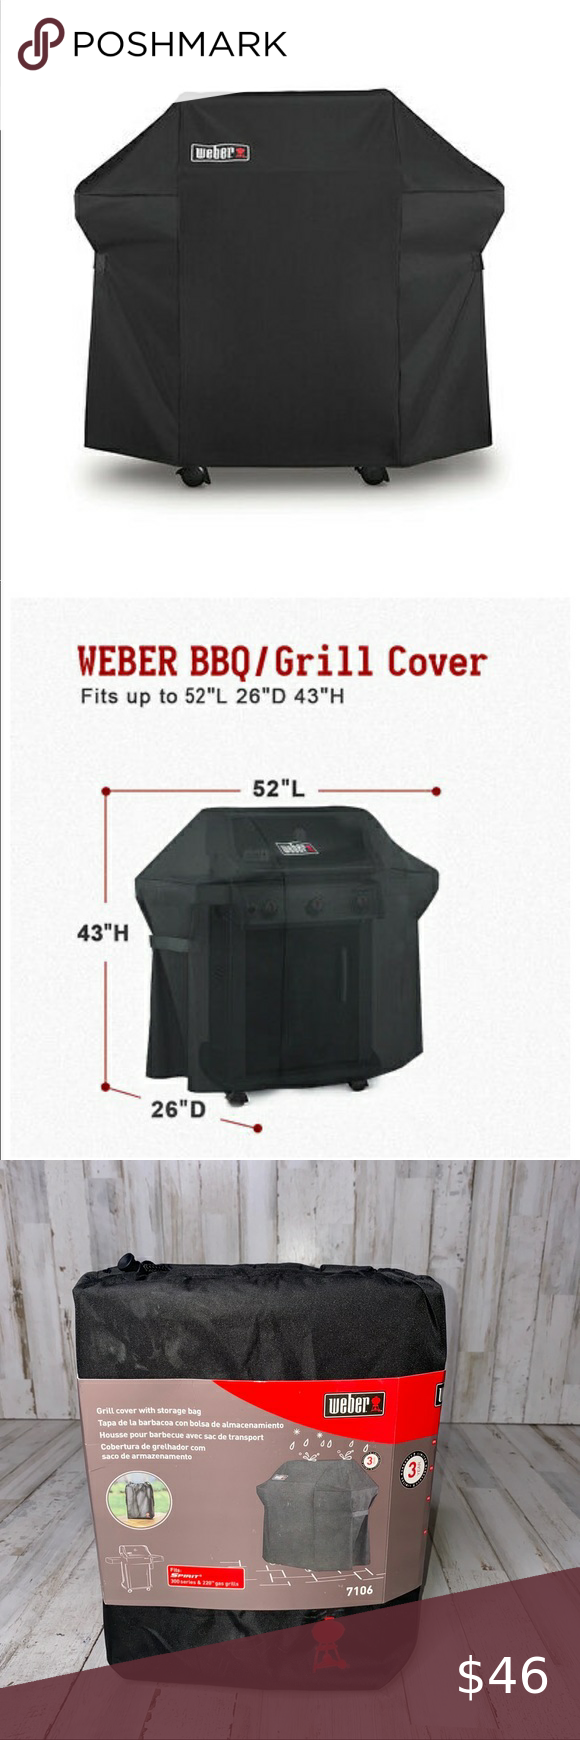 Weber 7106 Grill Cover Spirit 220 And 300 Series In 2020 Grill Cover Cover Grilling